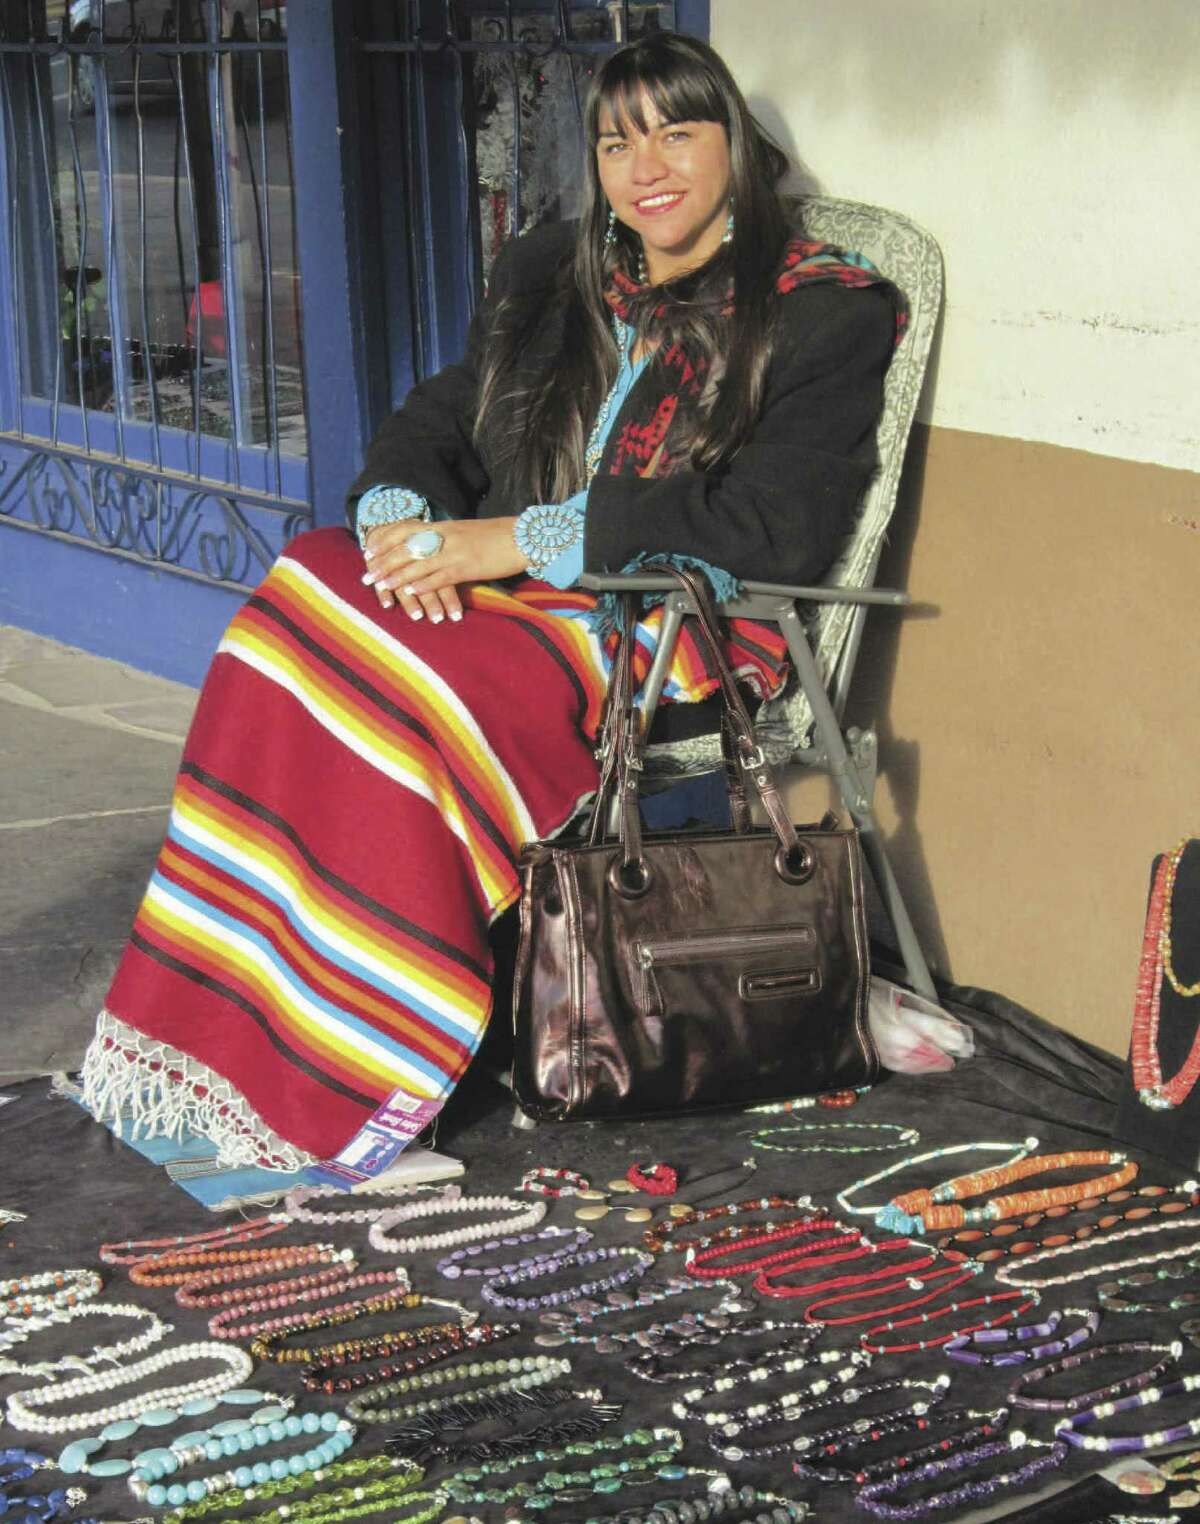 A vendor in Old Town Albuquerque displays her necklaces for sale.